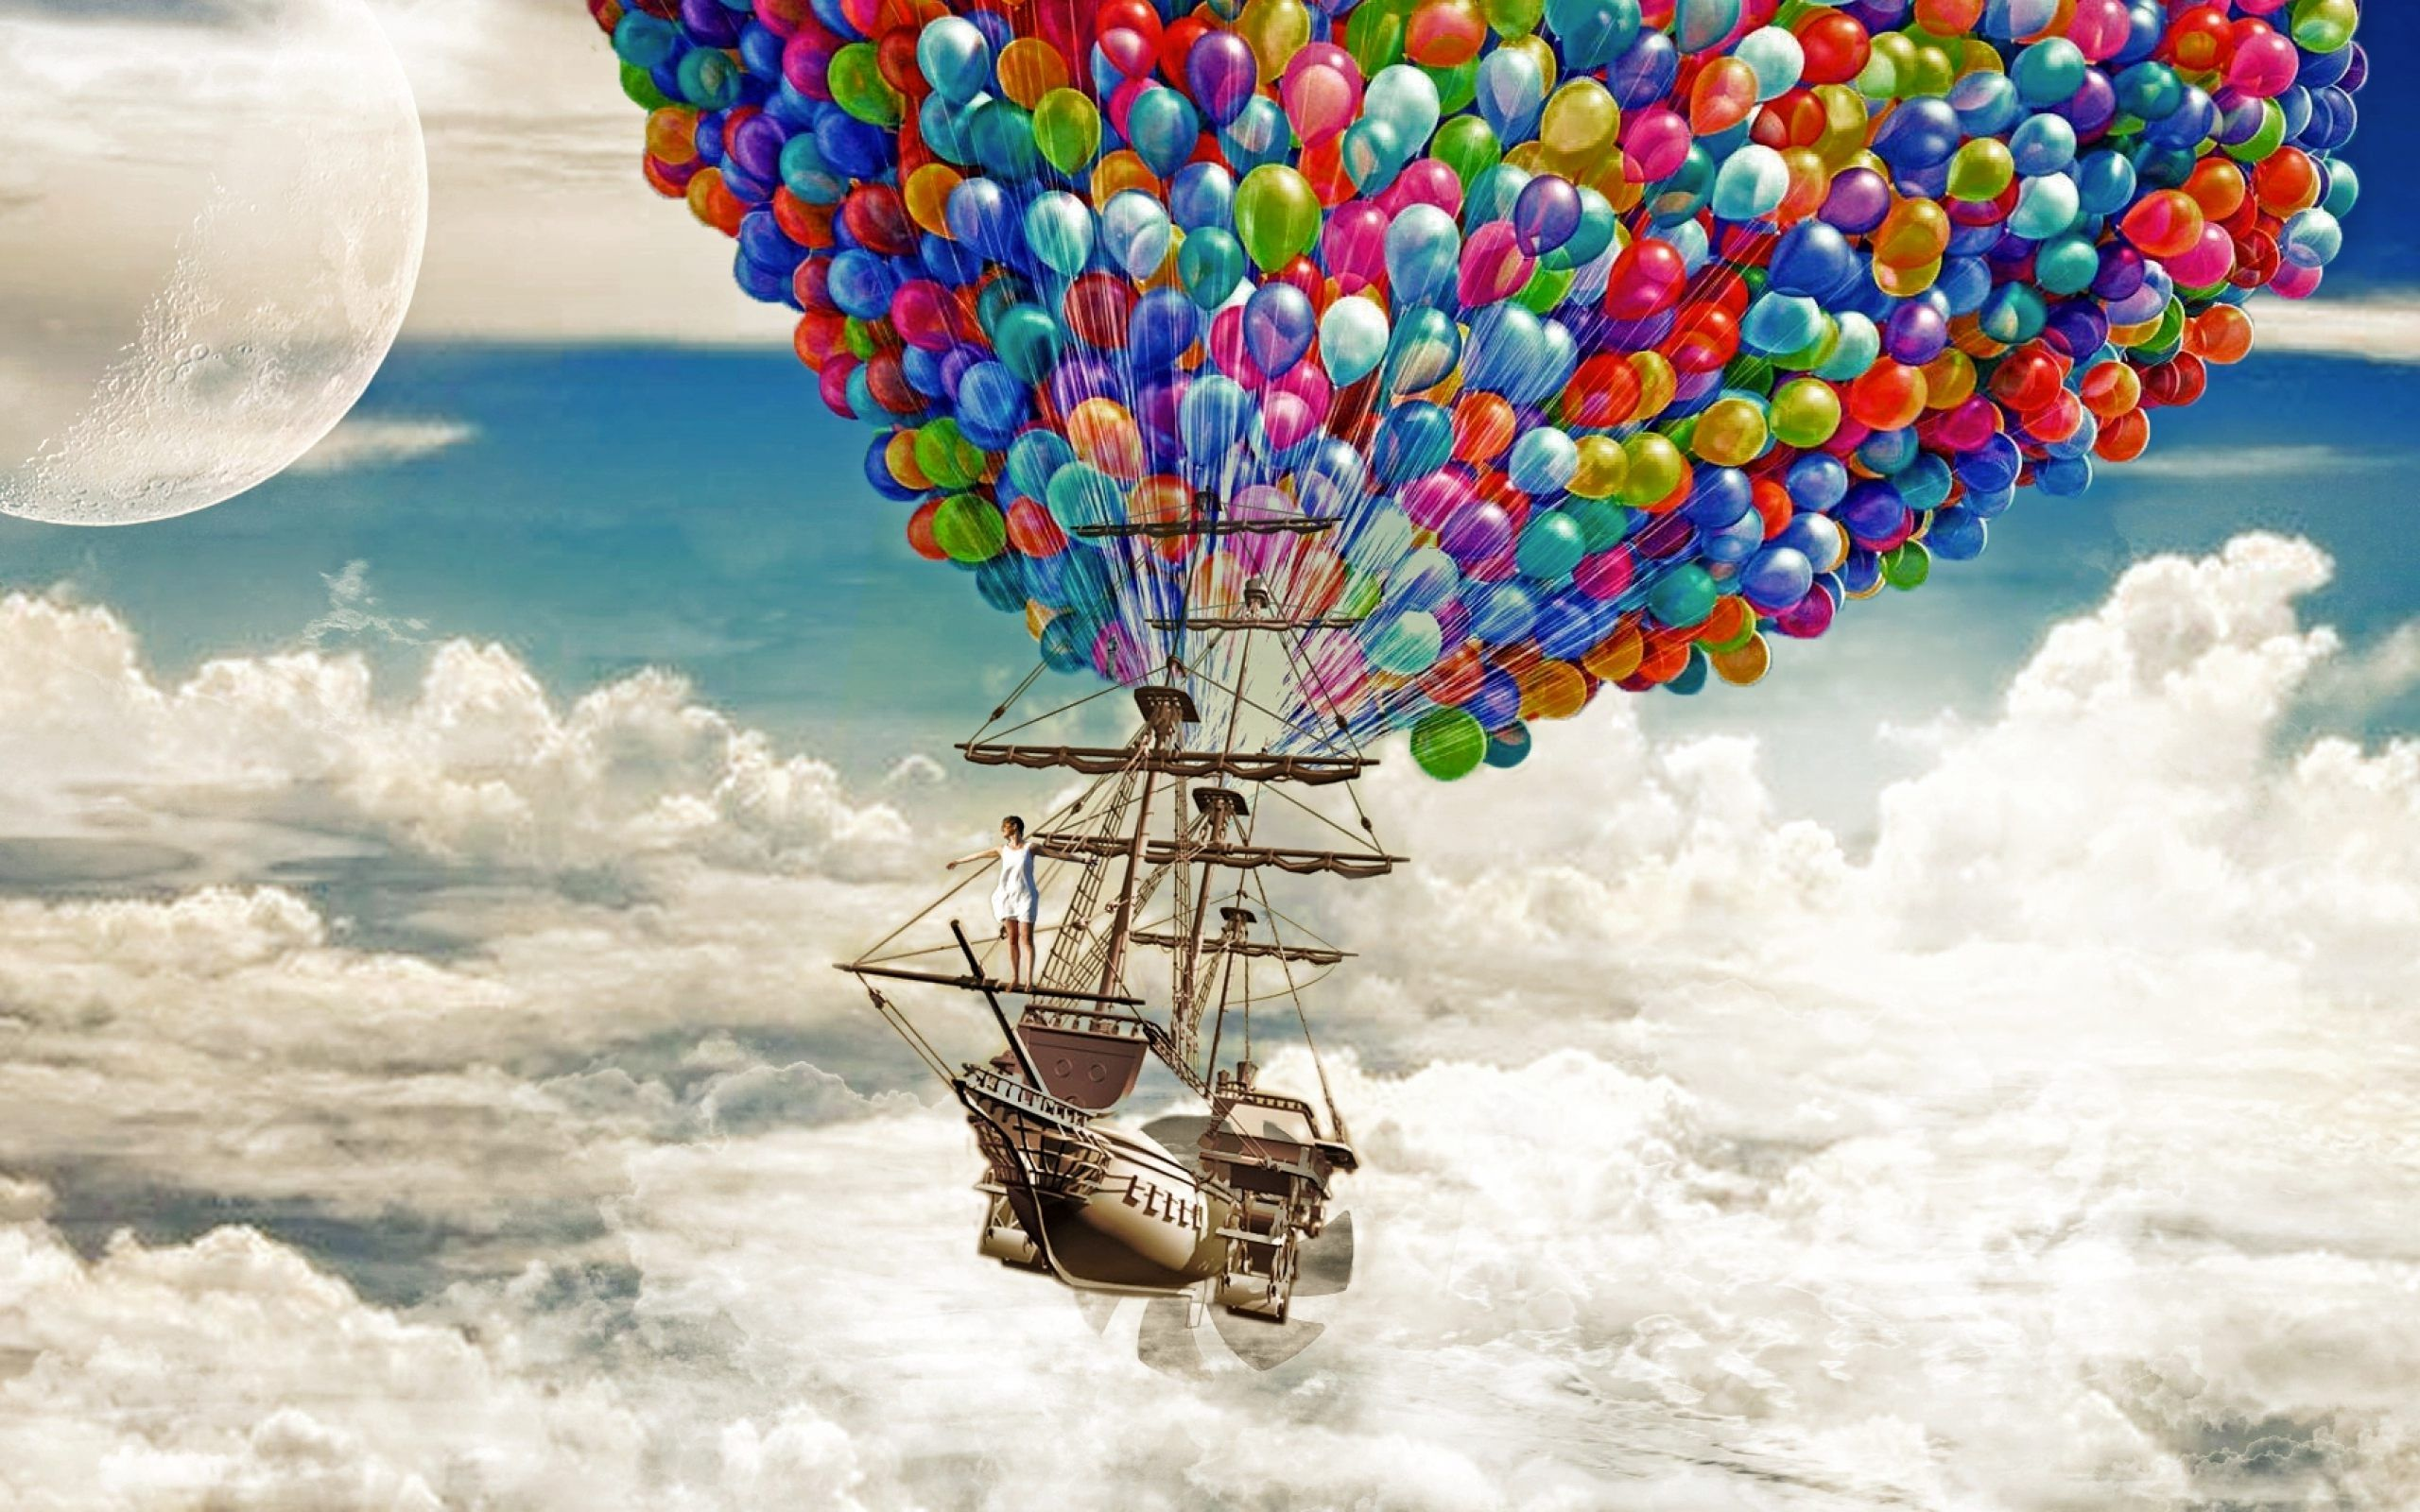 Pin By Fenia On Hot Air Balloons Balloon Clouds